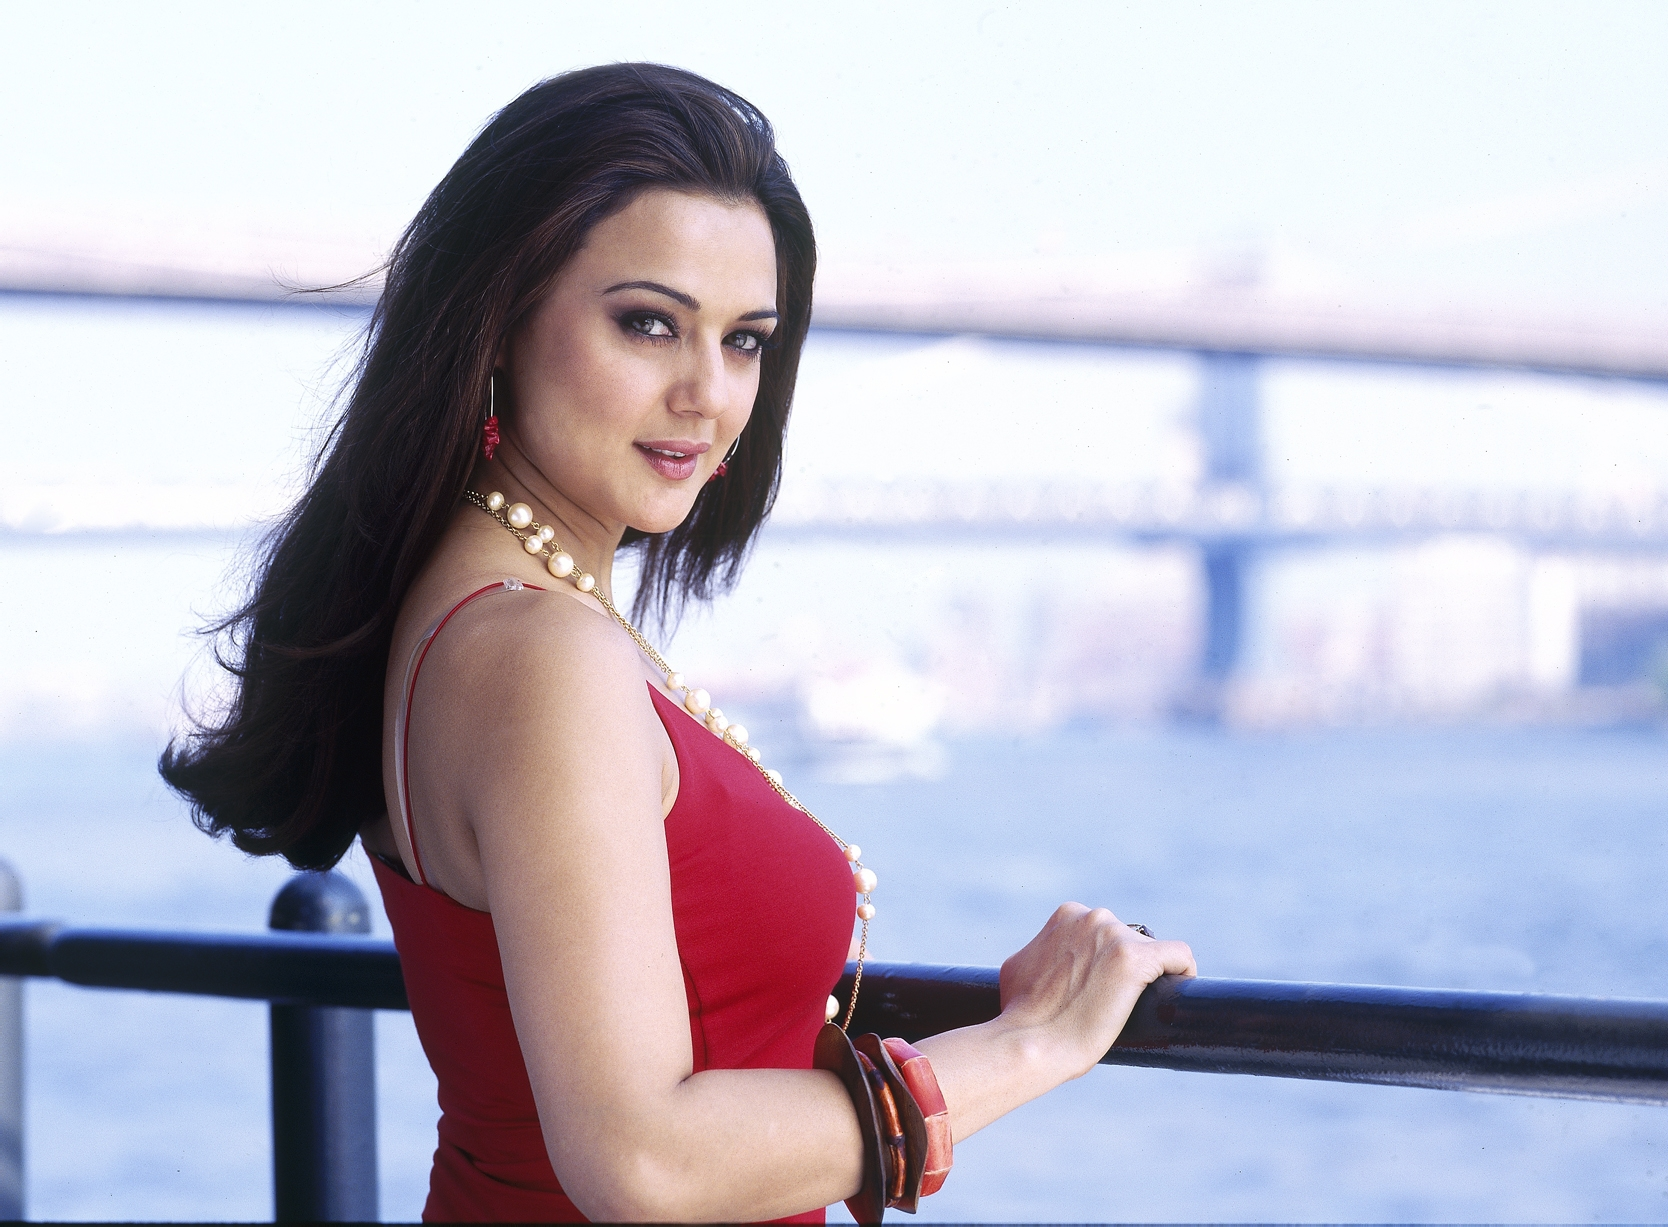 Preity Zinta Wallpapers Images Photos Pictures Backgrounds